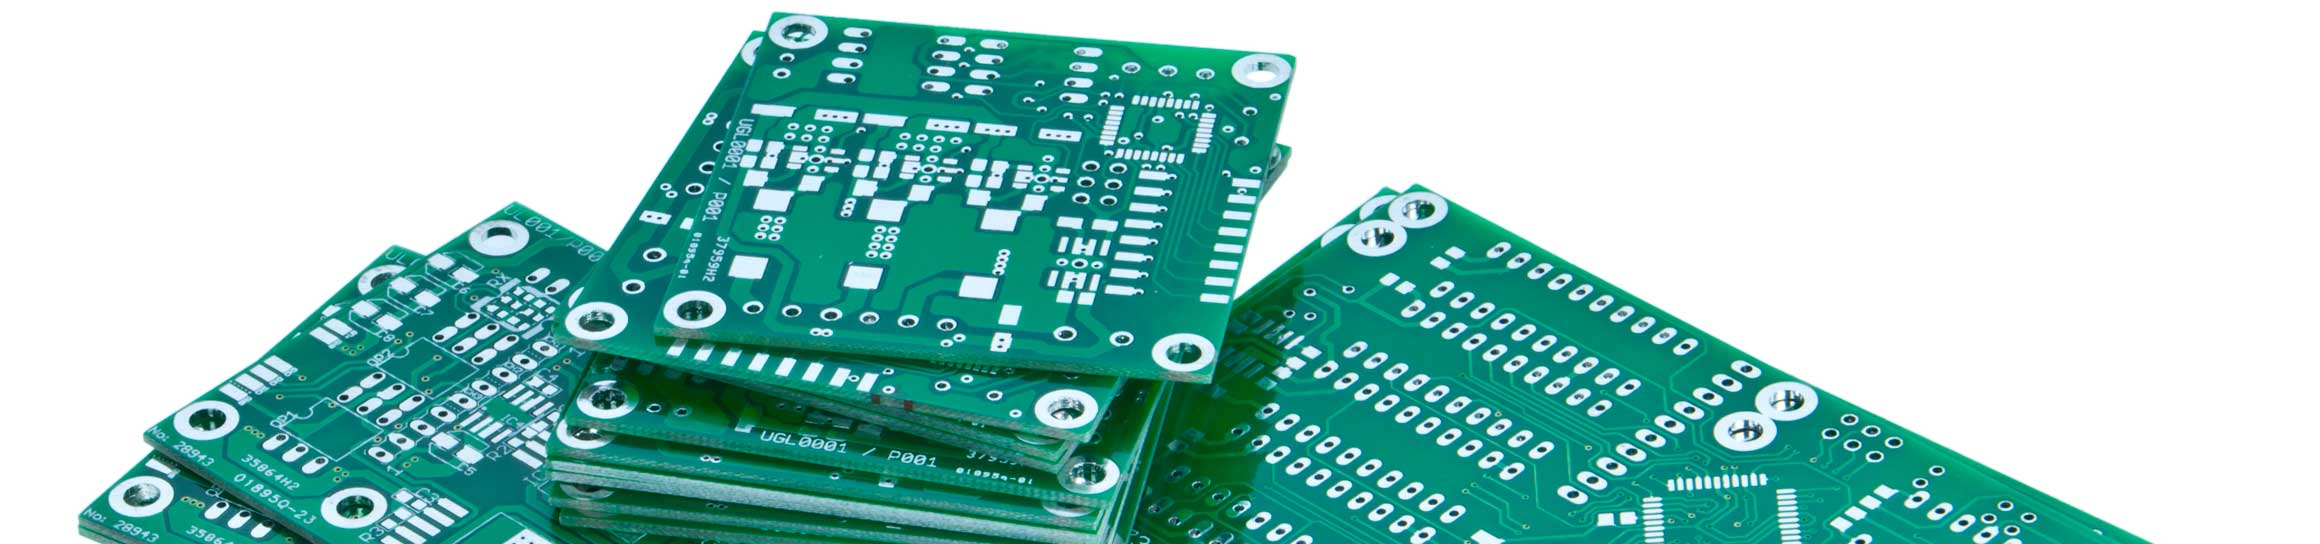 stack of printed circuit boards